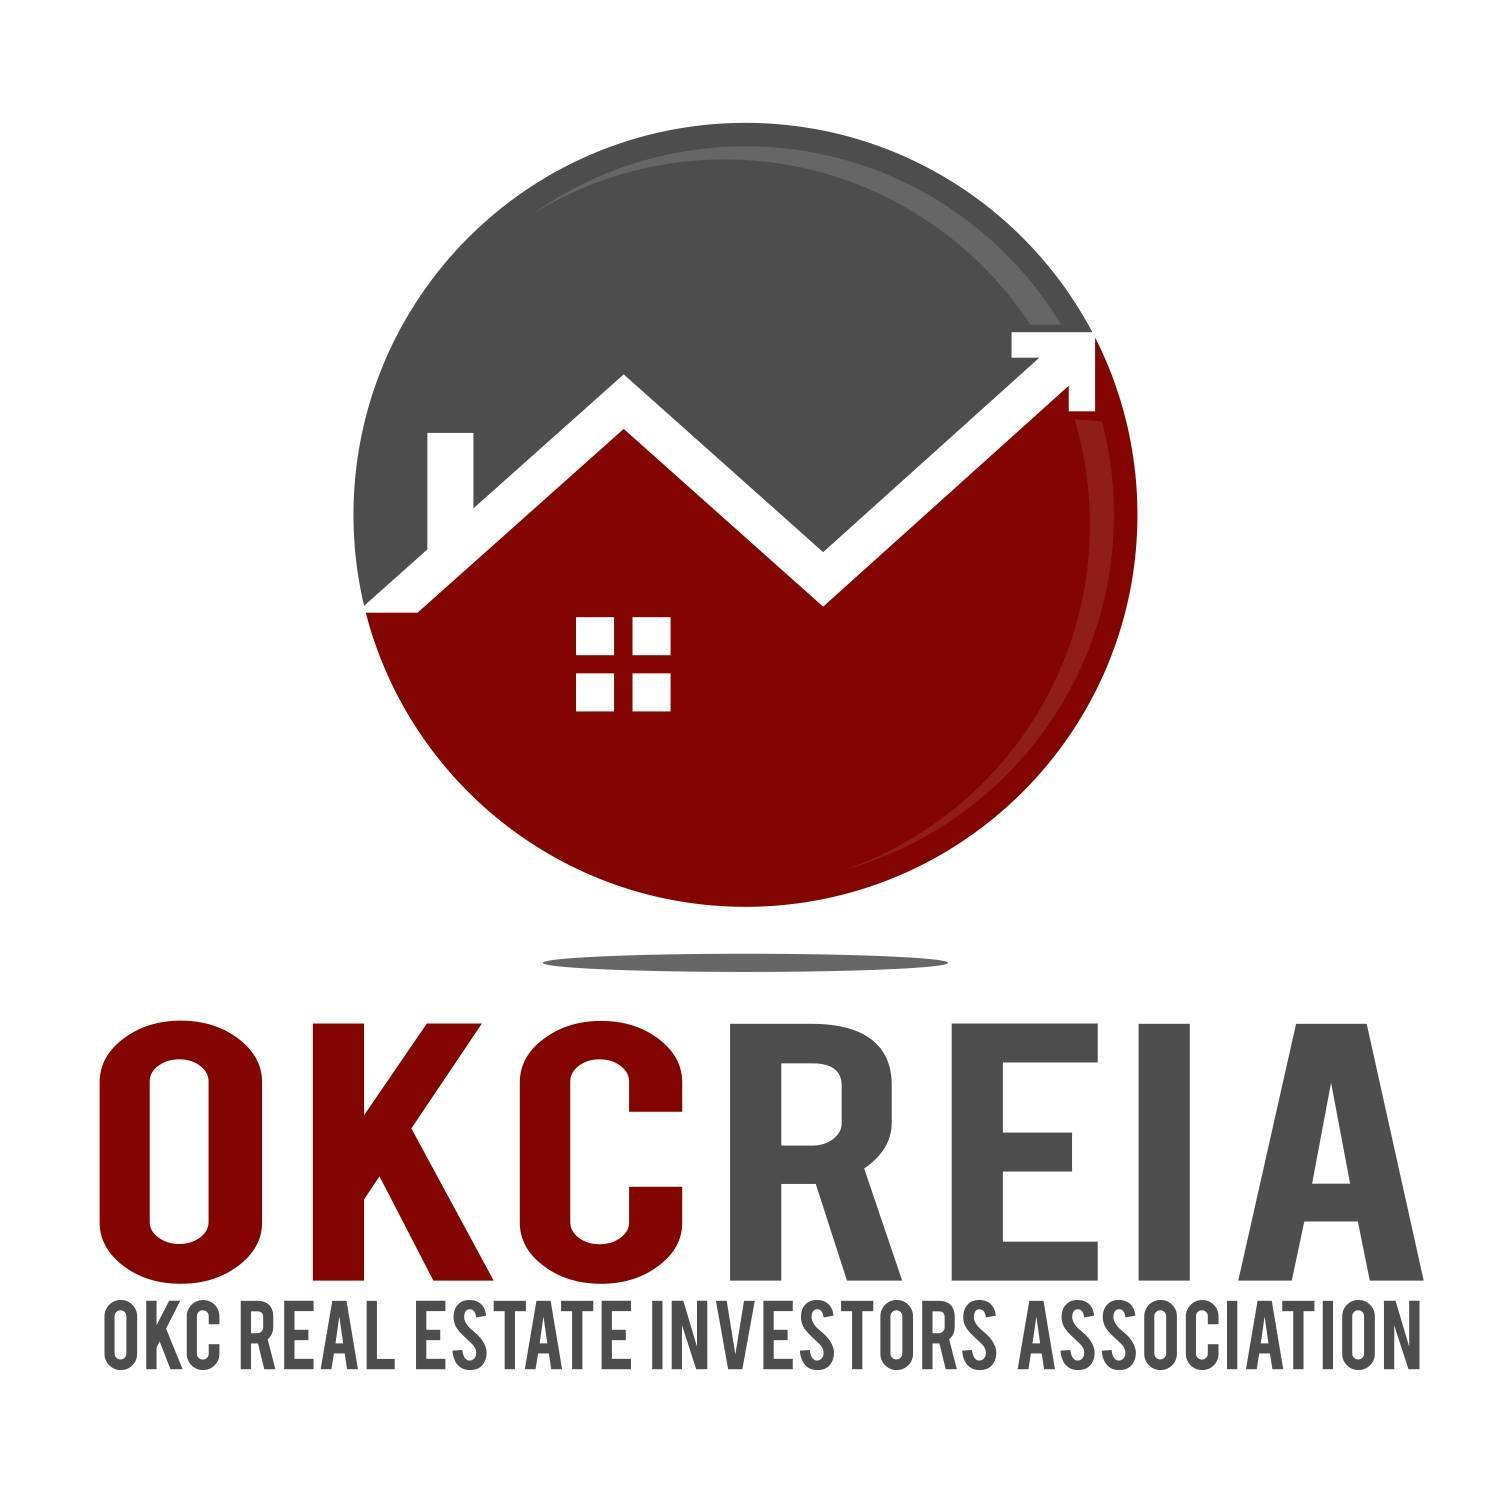 OKC Real Estate Investors Association